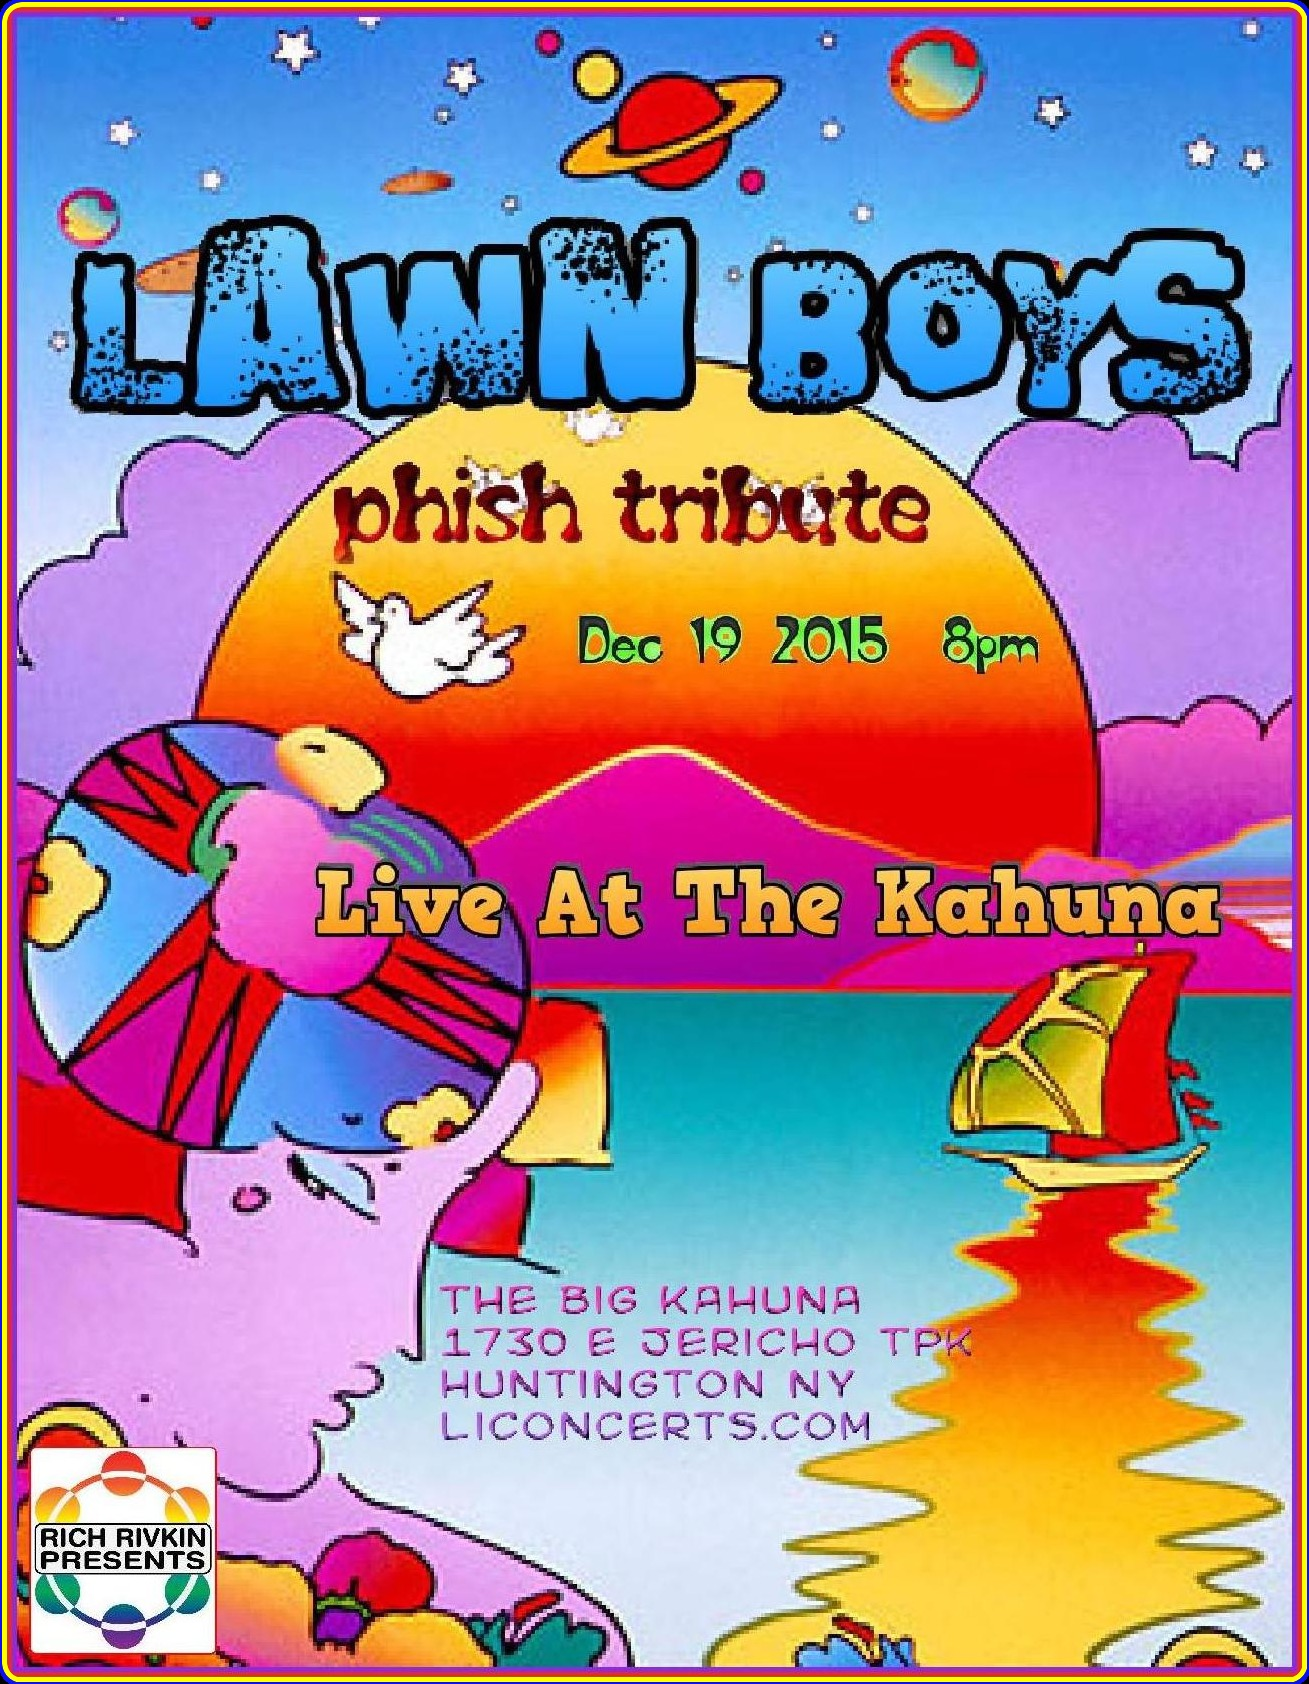 latka 2 flyer Lawn Boys